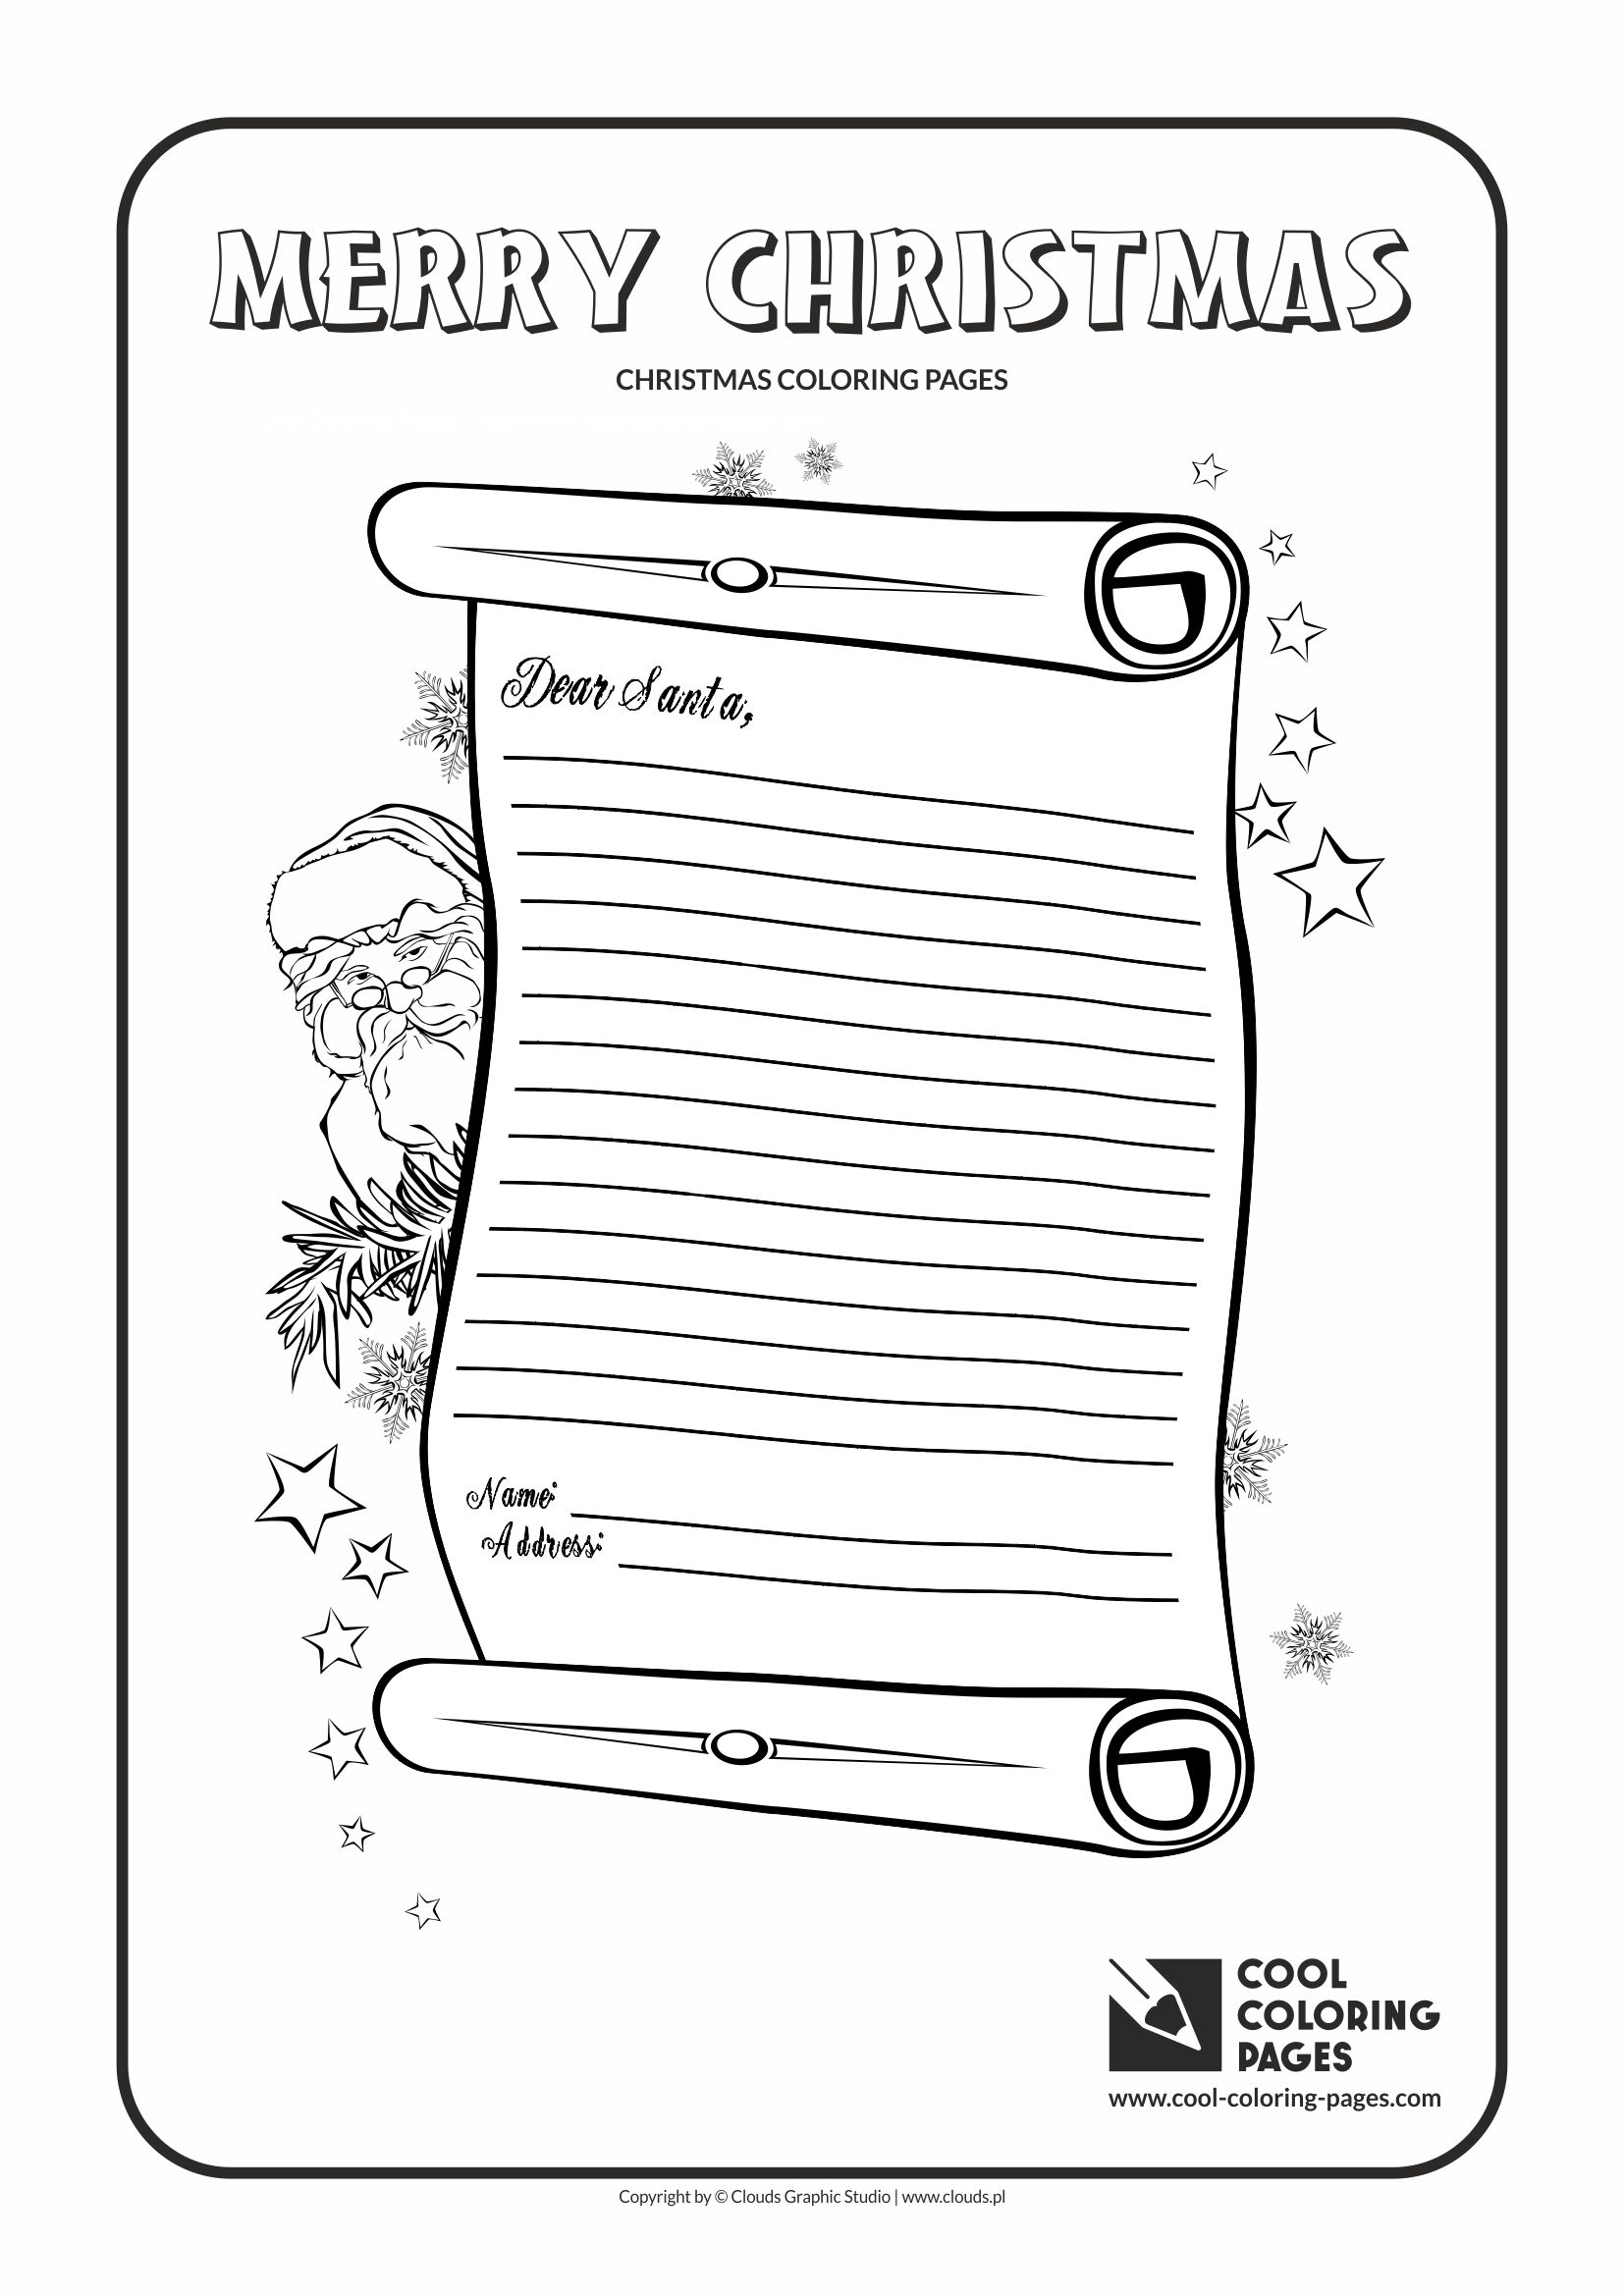 Dear Santa Coloring Pages Print With Letter To